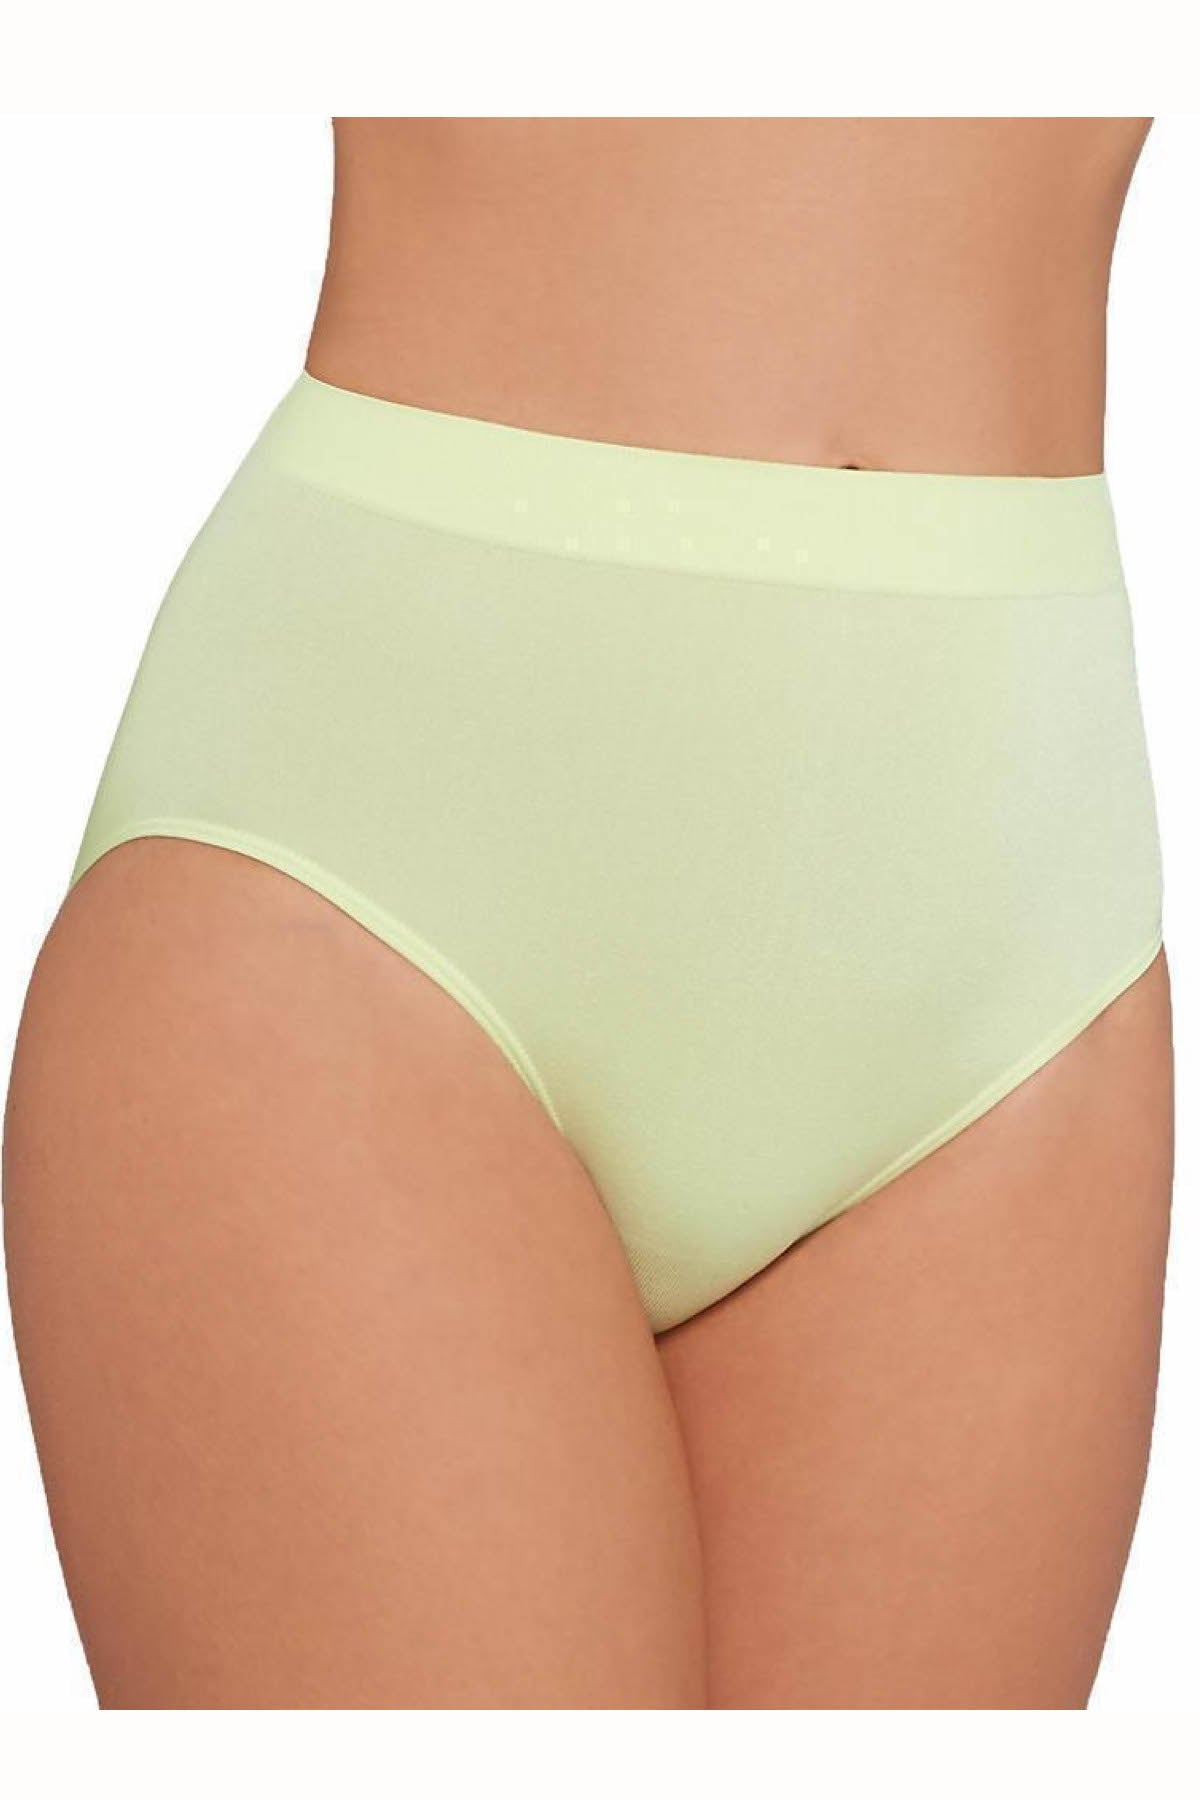 dfc7c3ba8a3b Wacoal White-Jade B-Smooth High-Cut Brief | CheapUndies